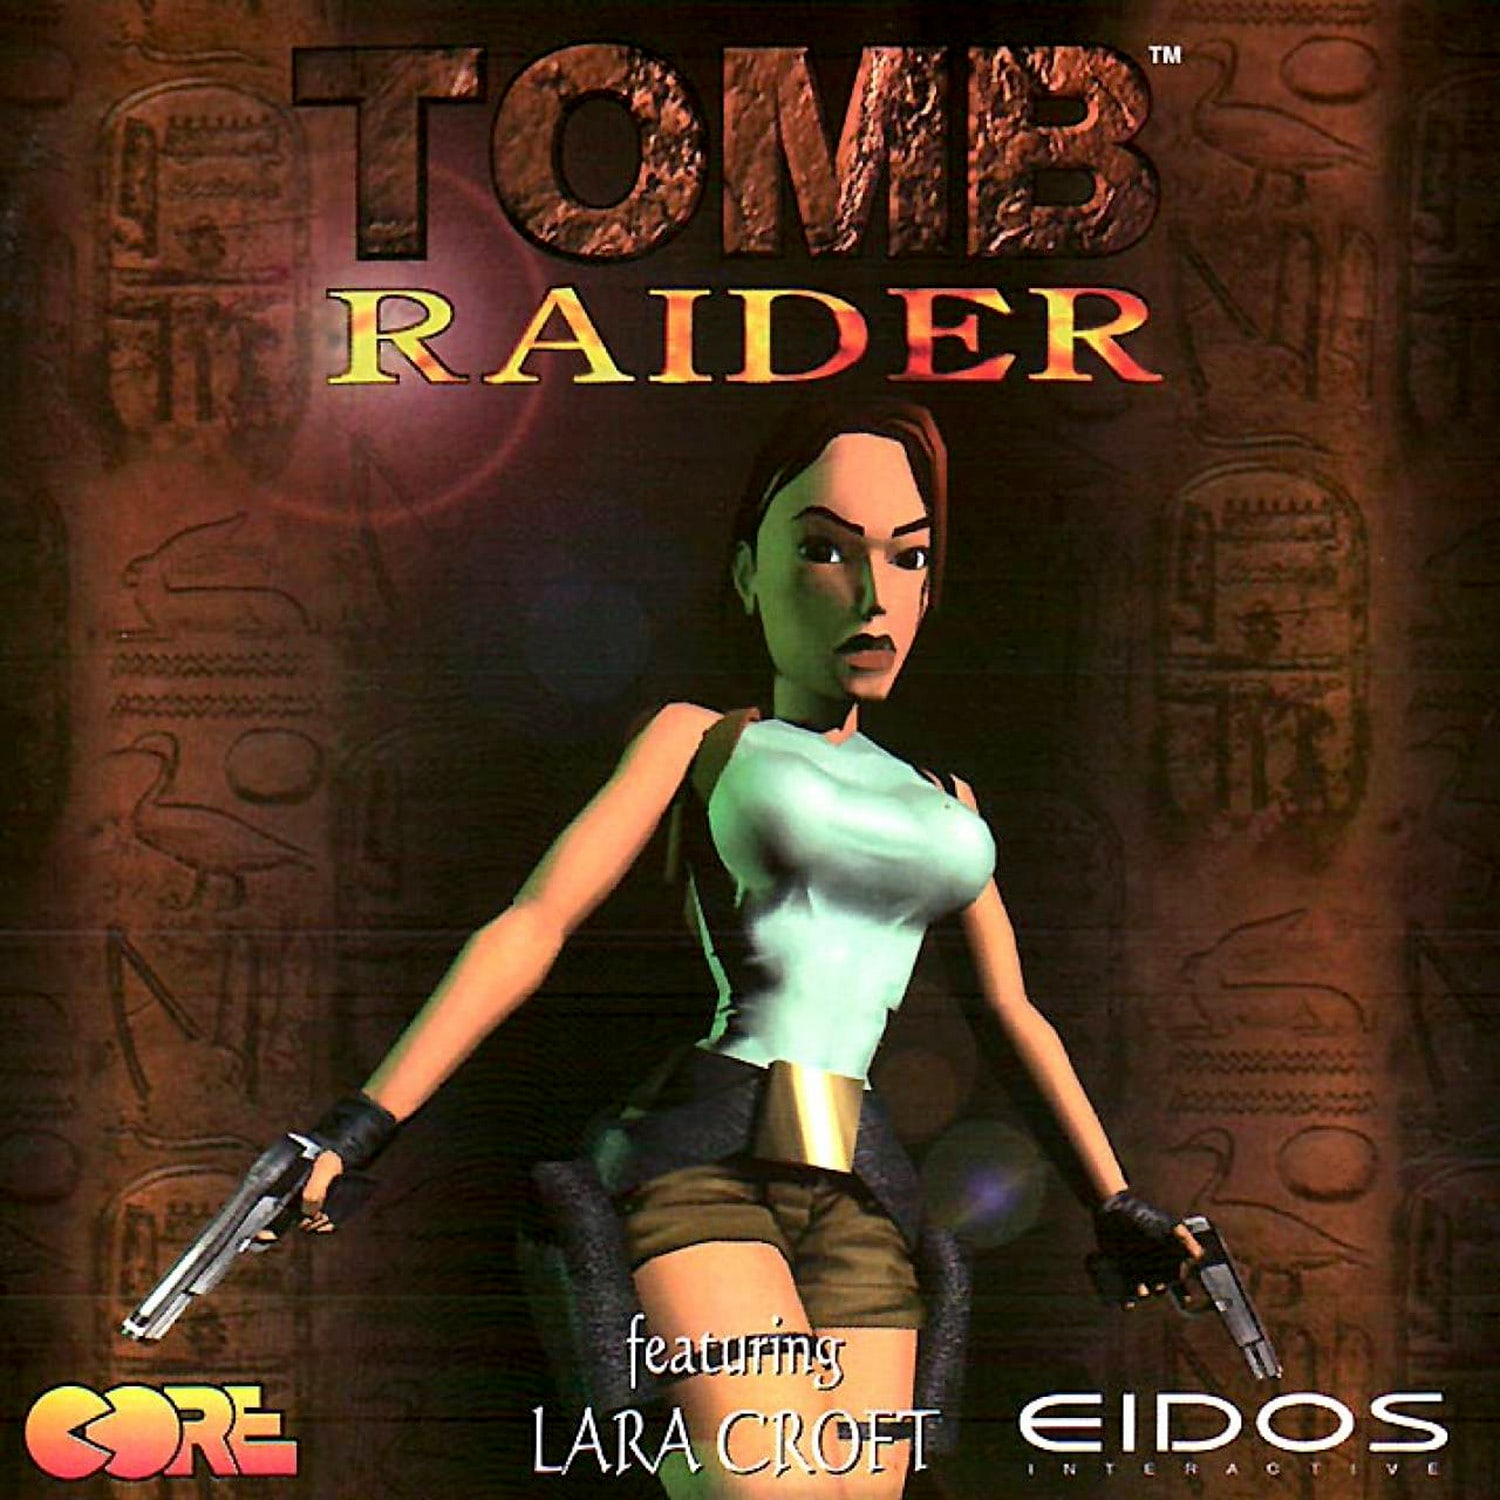 Tomb Raider Video Game 1996 Imdb